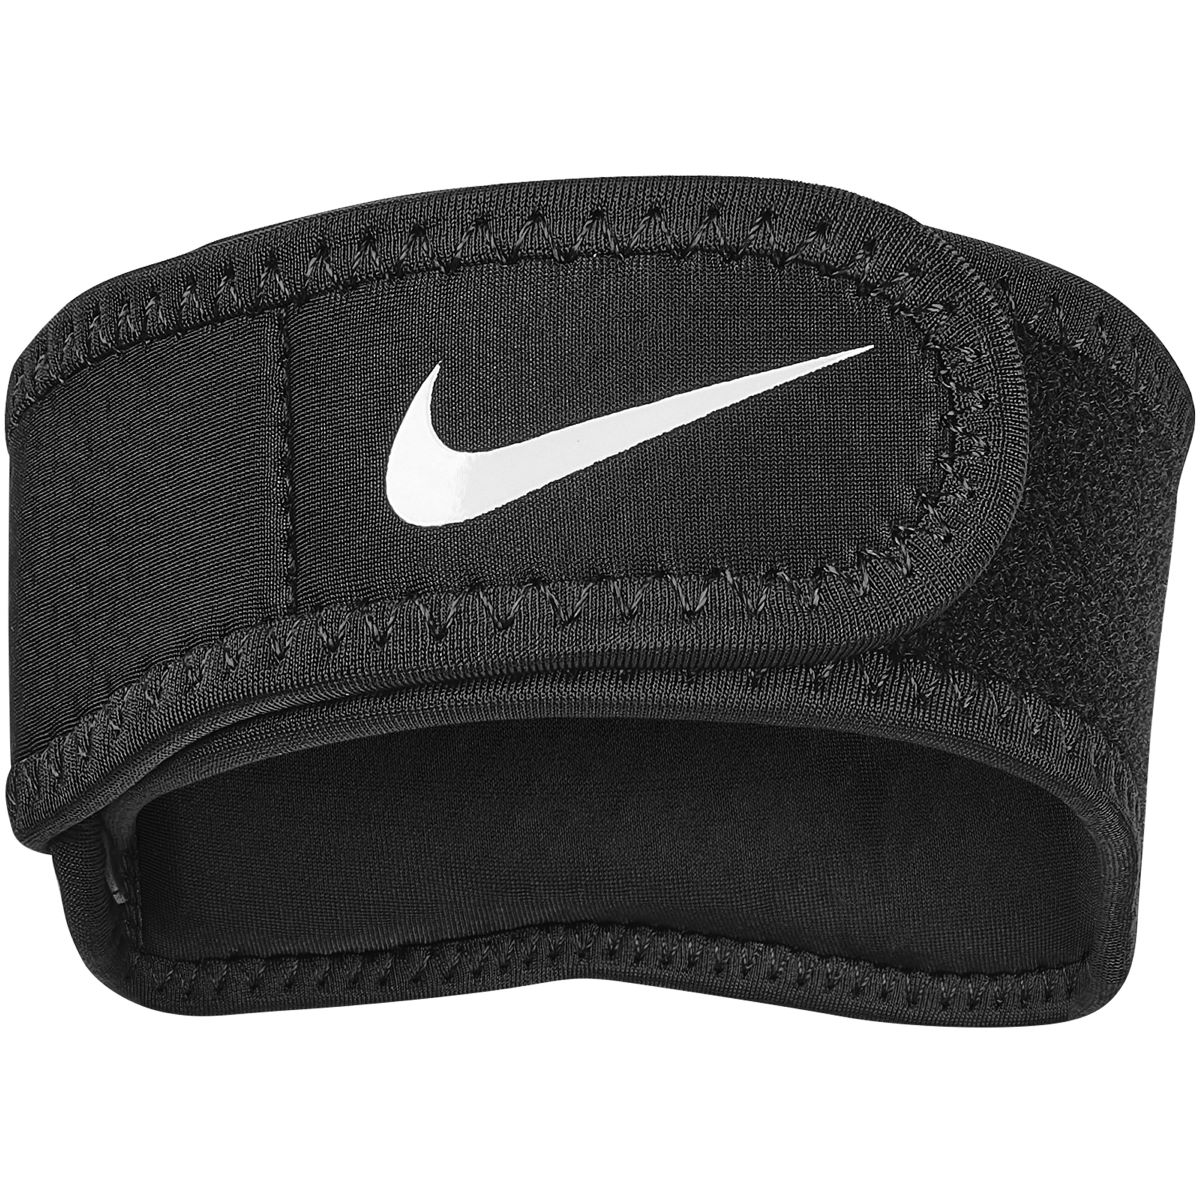 Nike Pro Elbow Band 3.0 - S/m Black/white  Arm Supports